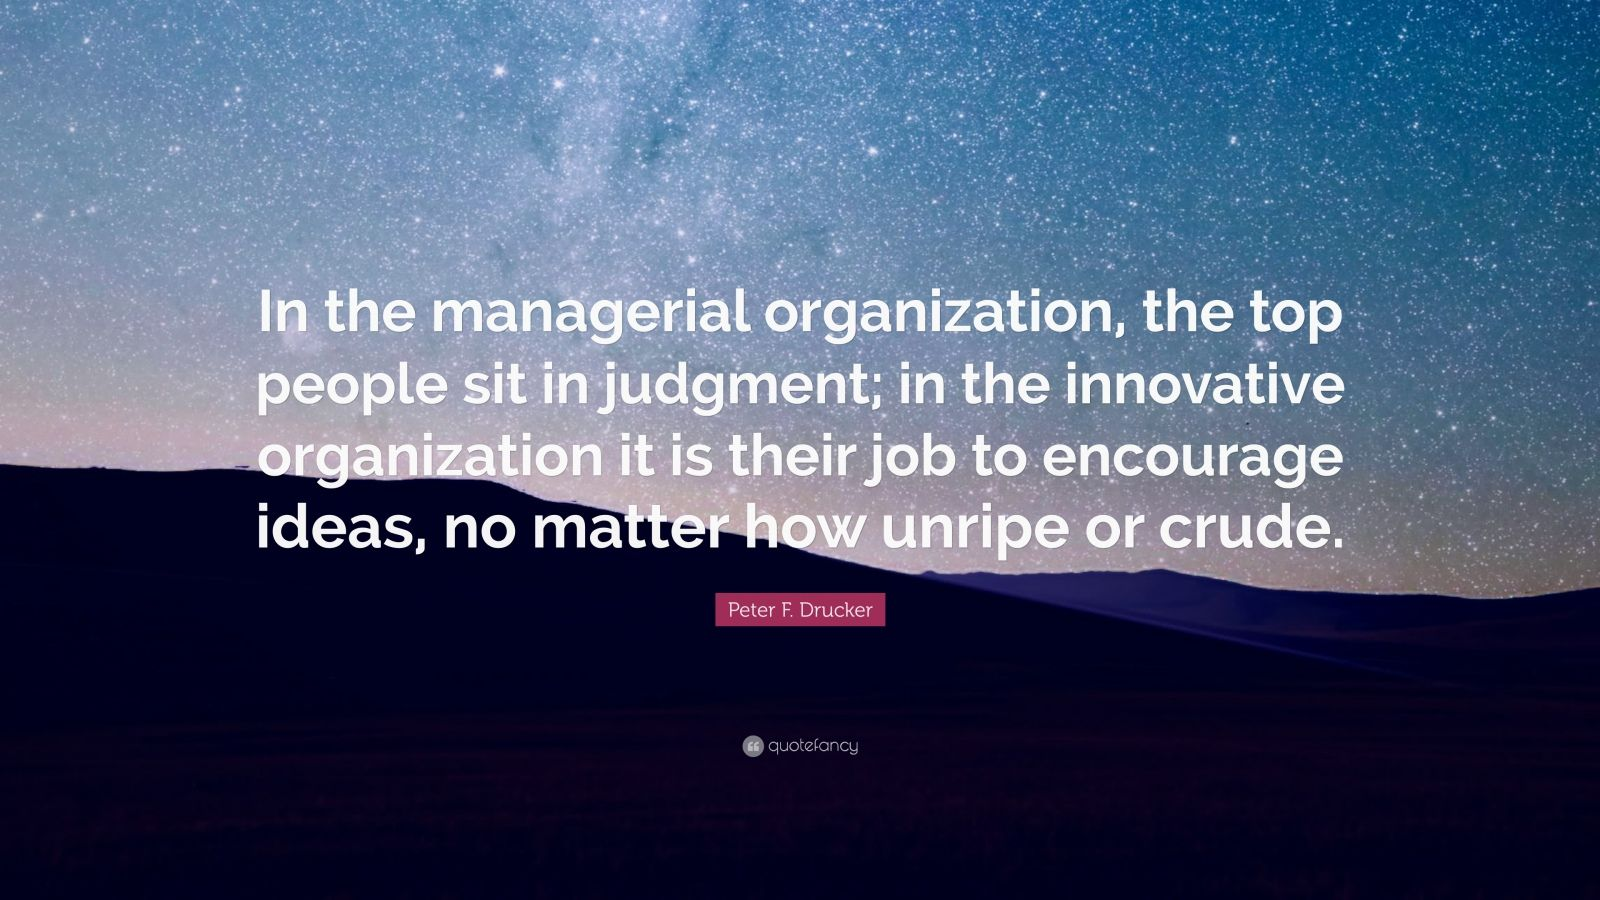 """Peter F. Drucker Quote: """"In the managerial organization, the top people sit in judgment; in the innovative organization it is their job to encourage ideas, no matter how unripe or crude."""""""